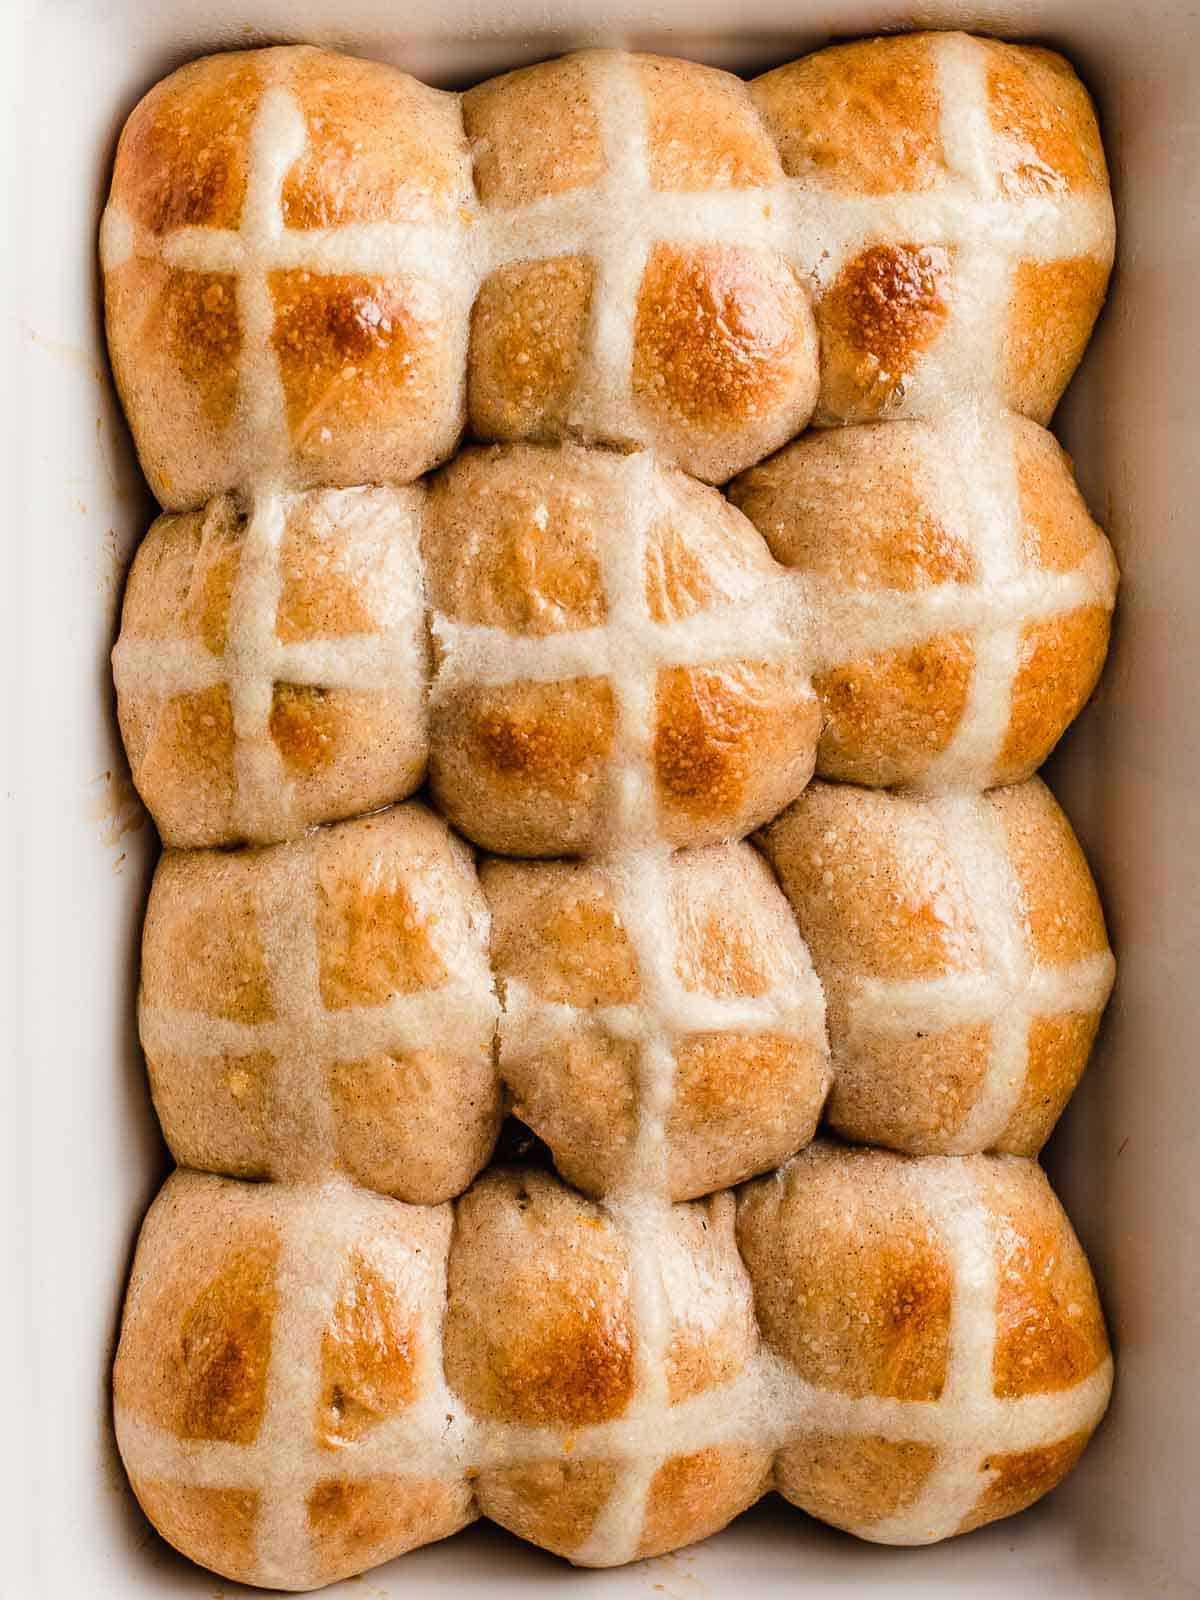 Sourdough hot cross buns in a baking dish.